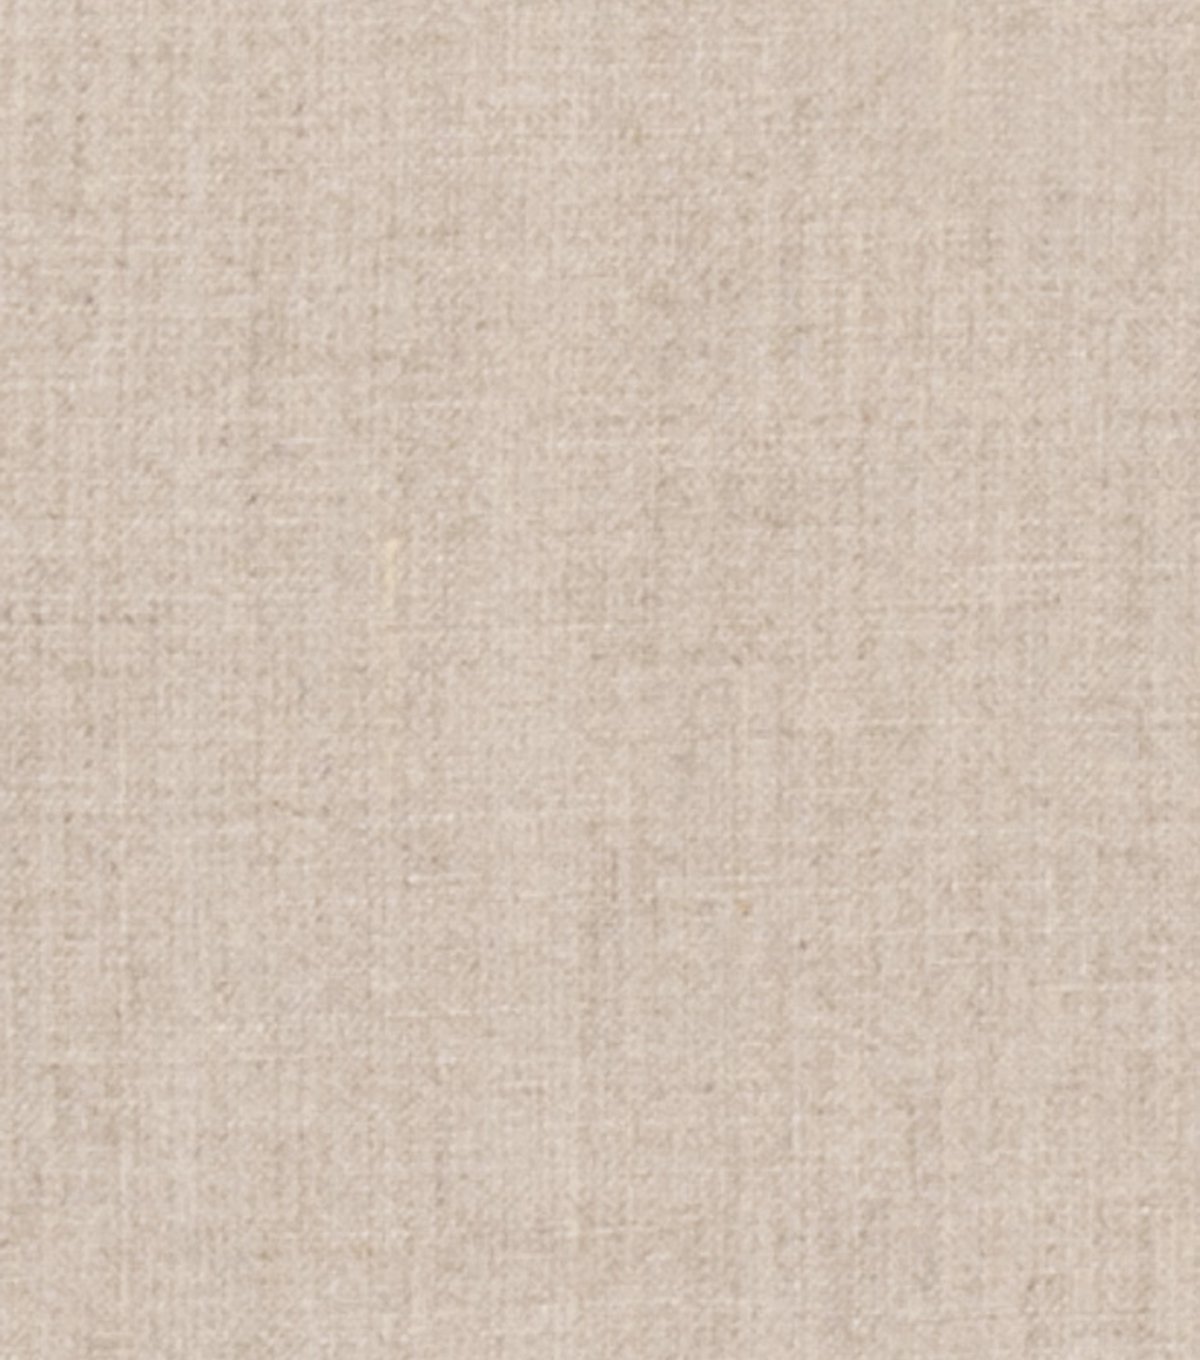 Home Decor 8\u0022x8\u0022 Fabric Swatch-Signature Series Rockford Linen Natural